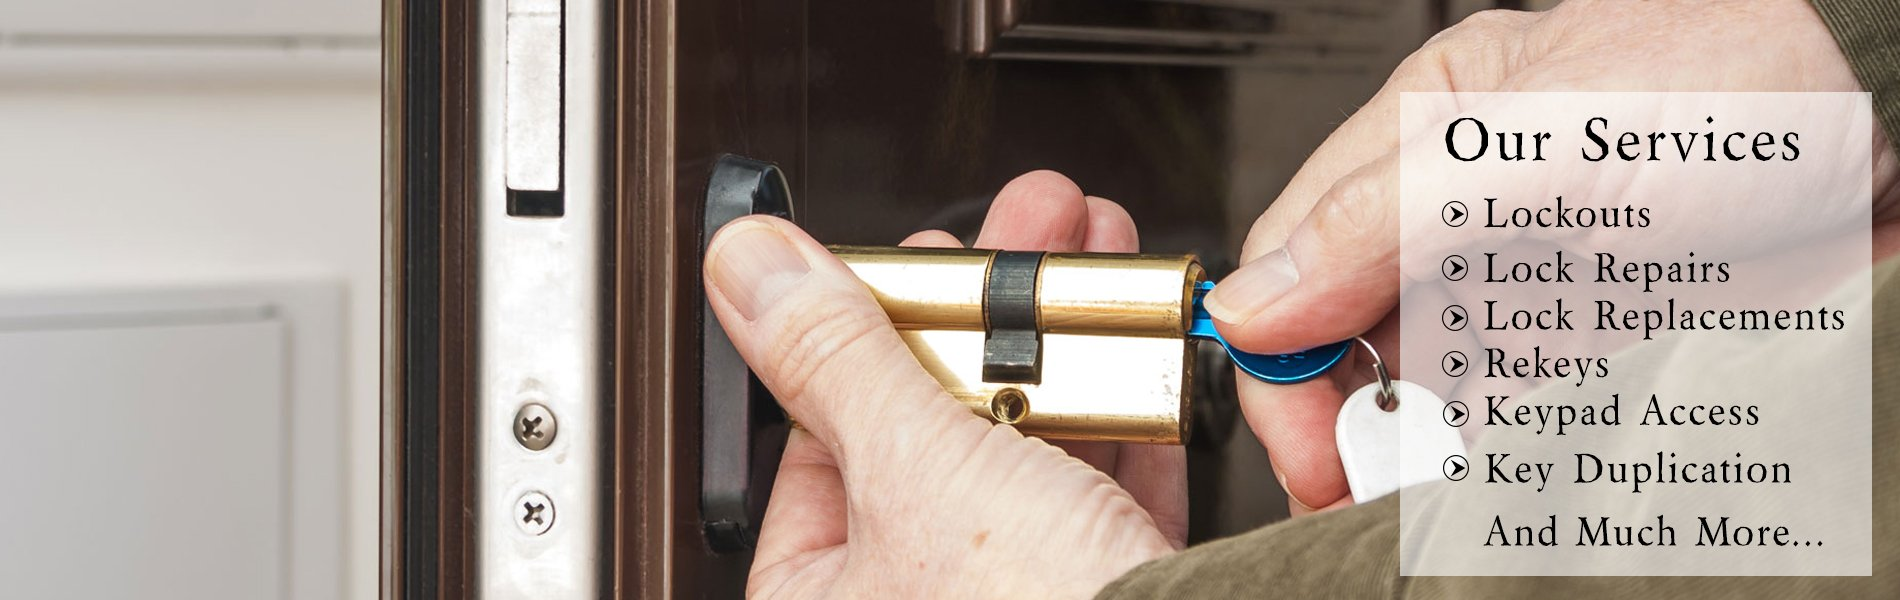 Community Locksmith Store Indianapolis, IN 317-456-5527